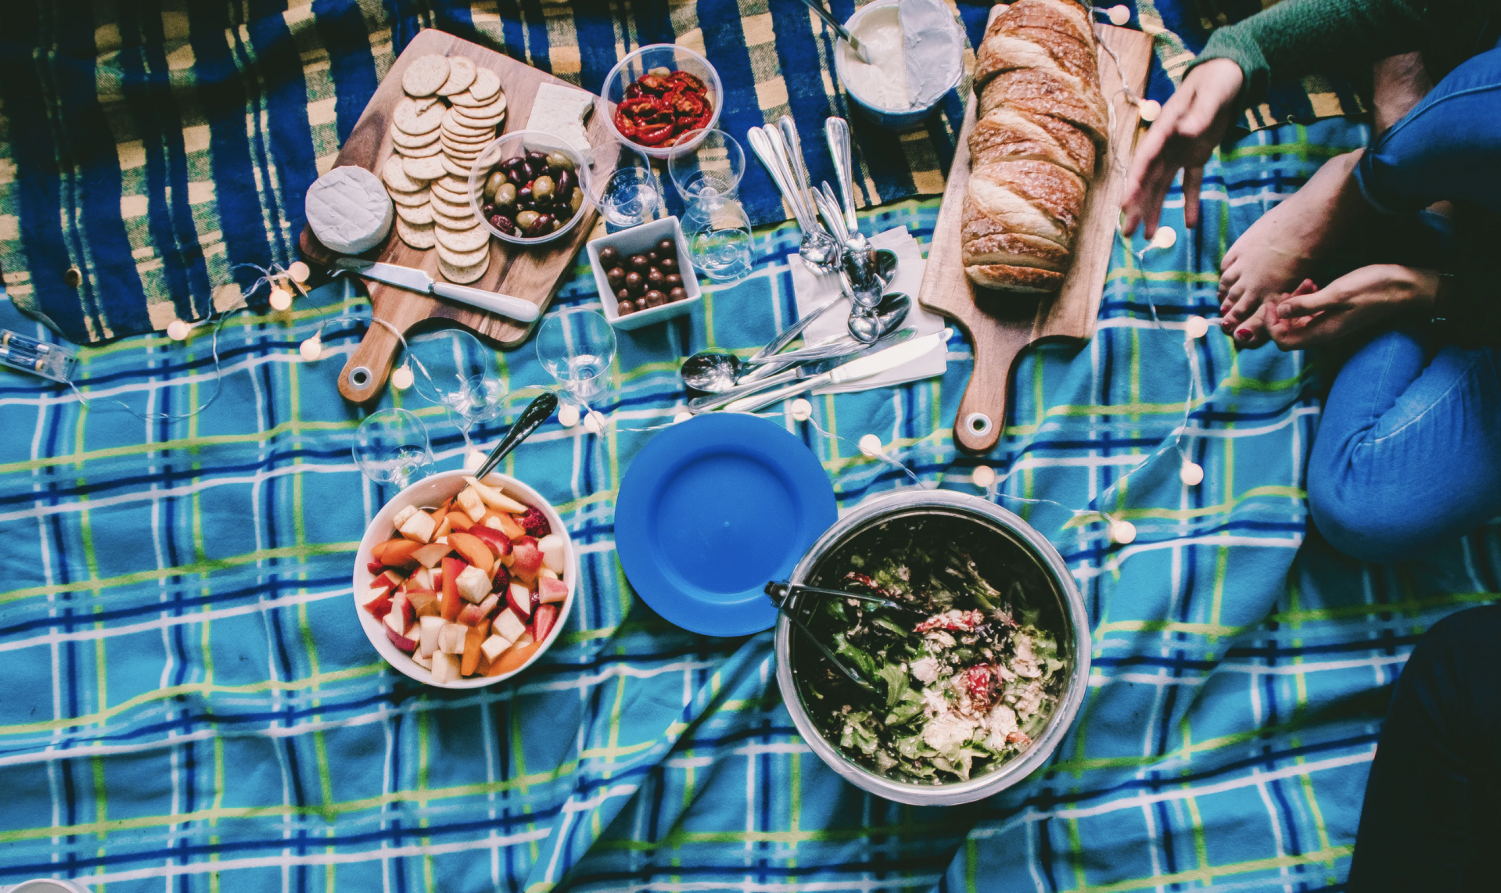 As+cheesy+as+they+may+seem%2C+picnics+are+actually+a+great+way+to+spend+time+with+the+people+in+your+life.+Picnics+allow+for+people+to+easily+enjoy+the+fresh+air+and+the+company+of+others.+The+location+does+not+have+to+be+special+or+hard+to+get+to%2C+just+somewhere+where+there+is+green+grass%2C+a+fresh+breeze%2C+and+good+people.+Bring+your+friends%2C+families%2C+or+even+just+your+pets+and+relish+in+the+simplicity+of+summer+and+the+good+weather+it+offers+because+in+New+England+the+weather+is+always+changing.